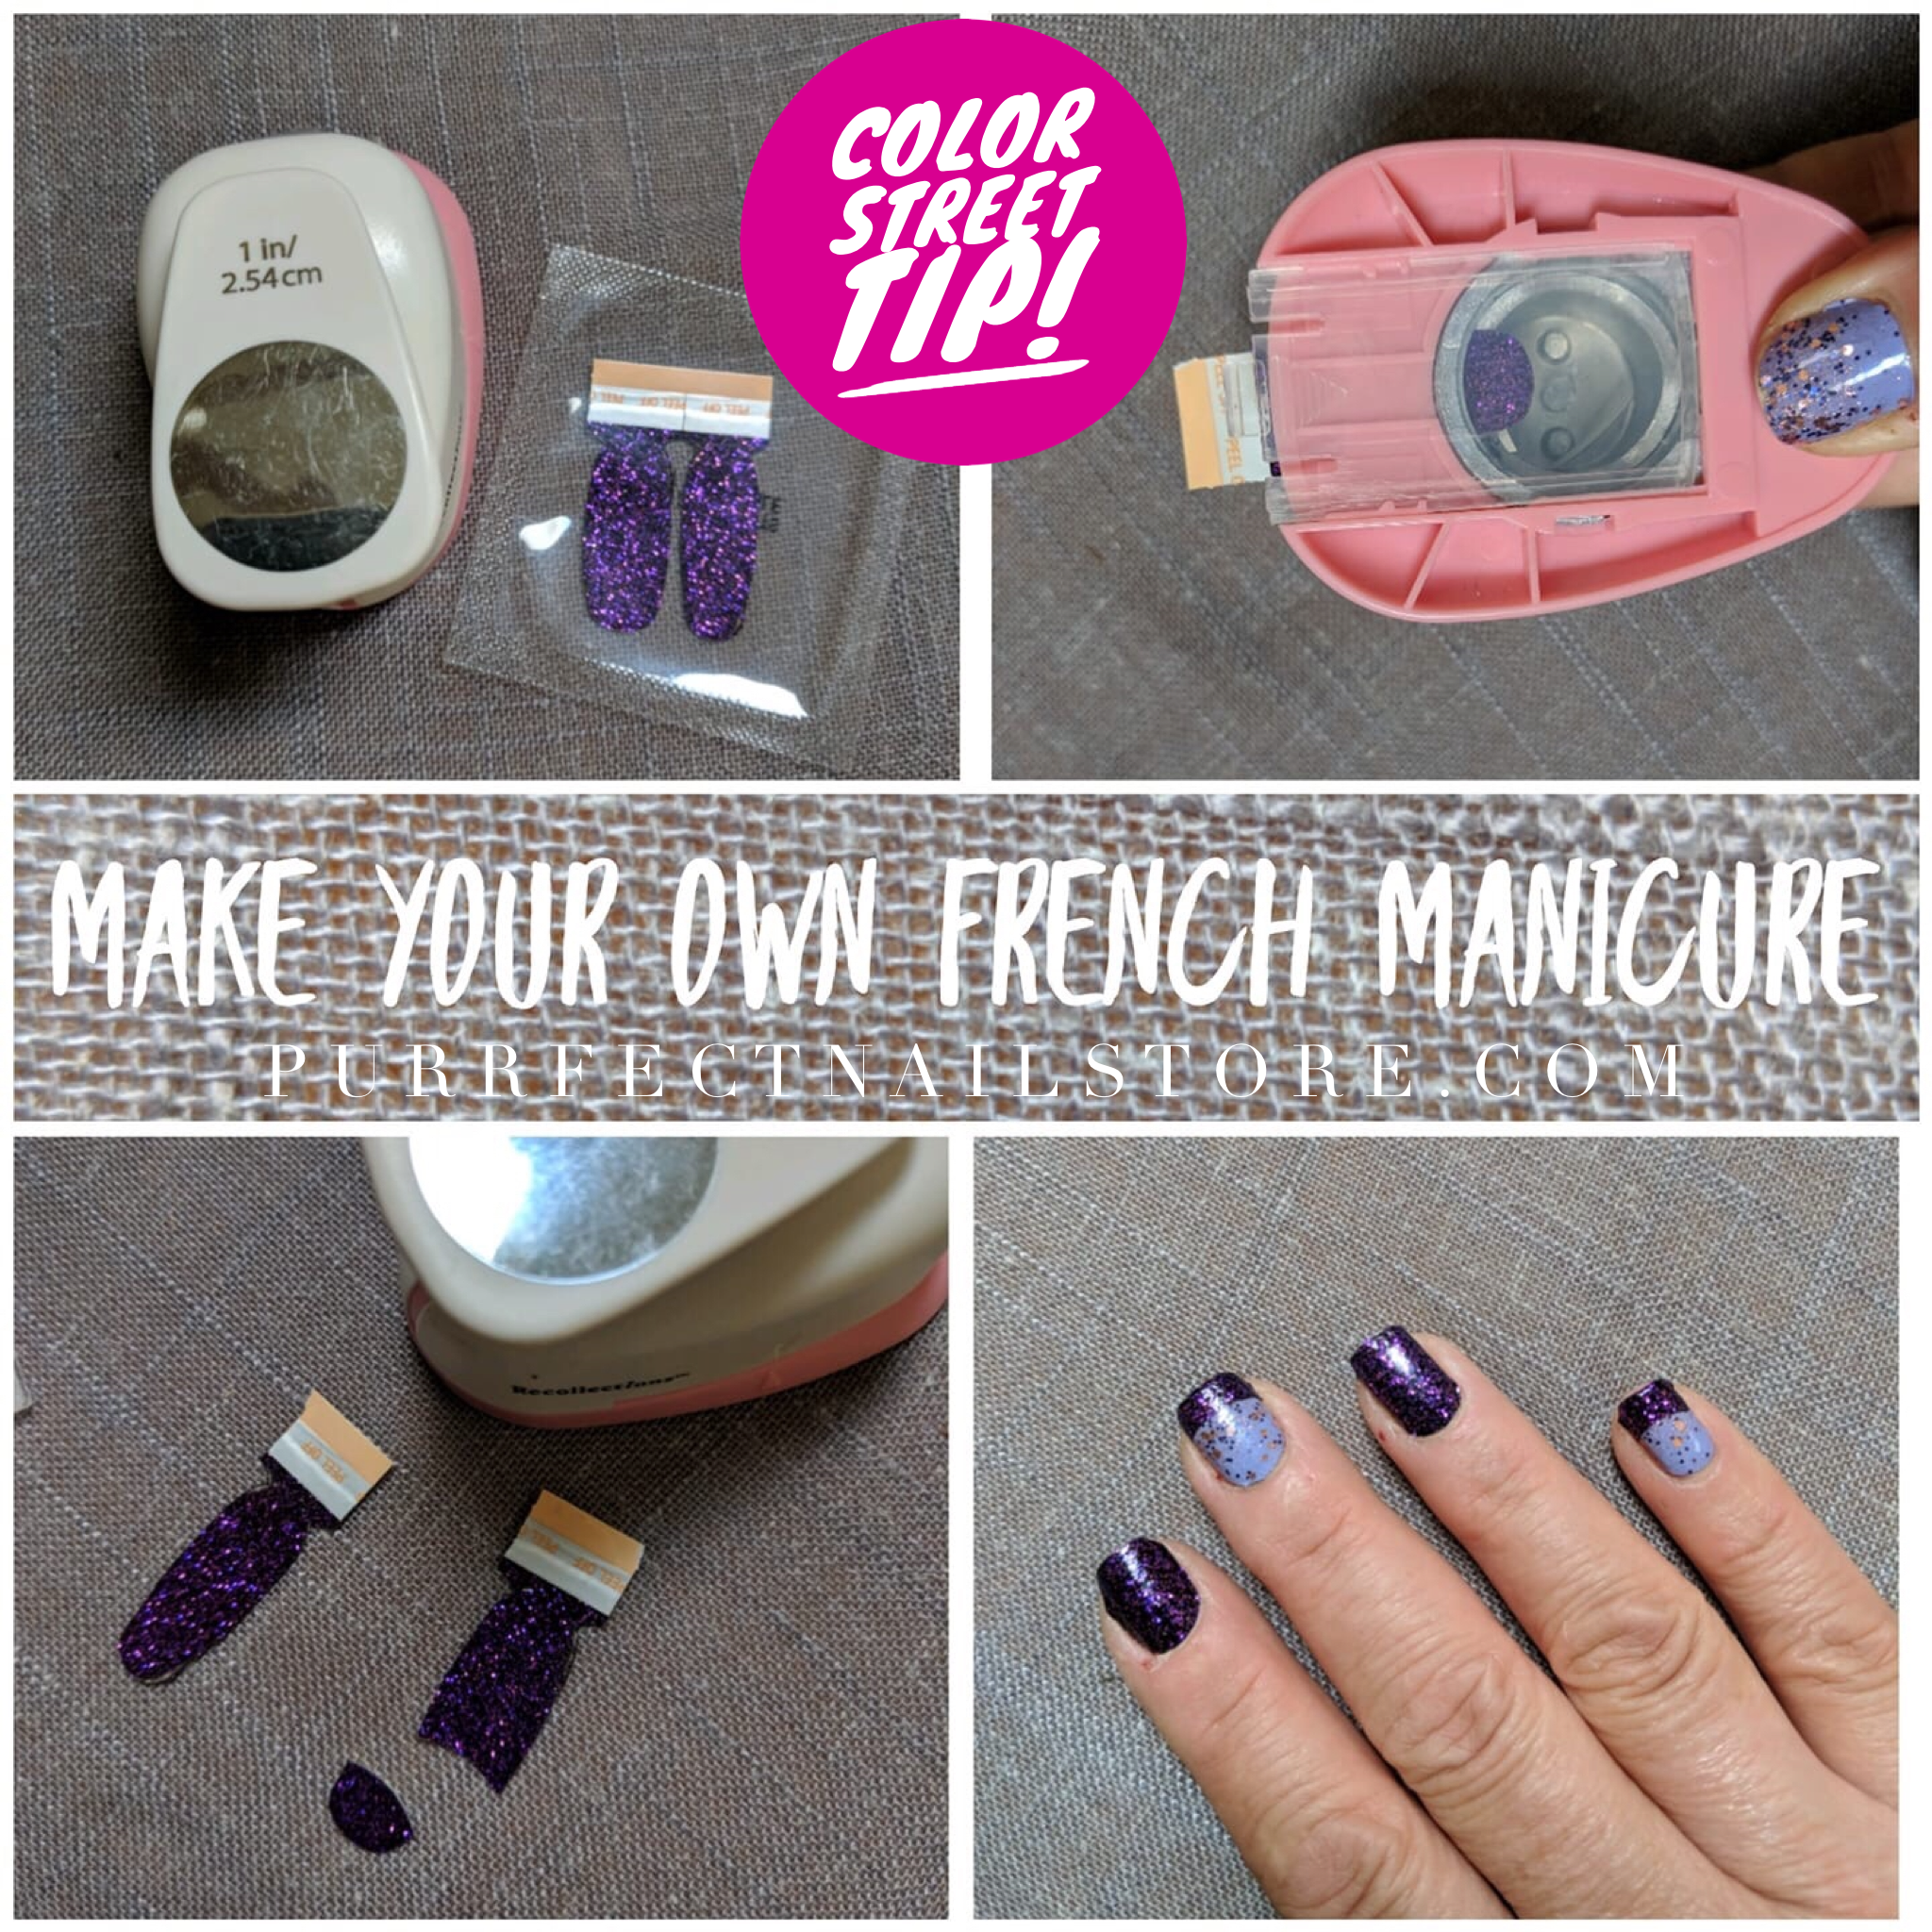 Take Any Color Street Color And Punch Out Your Own French Manicure